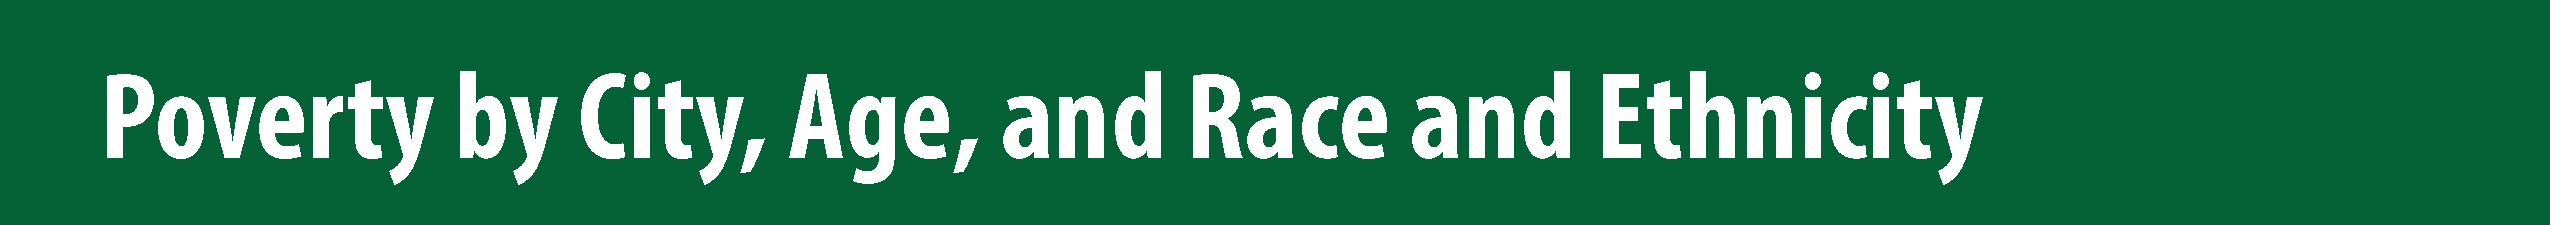 poverty_race_header-05.png